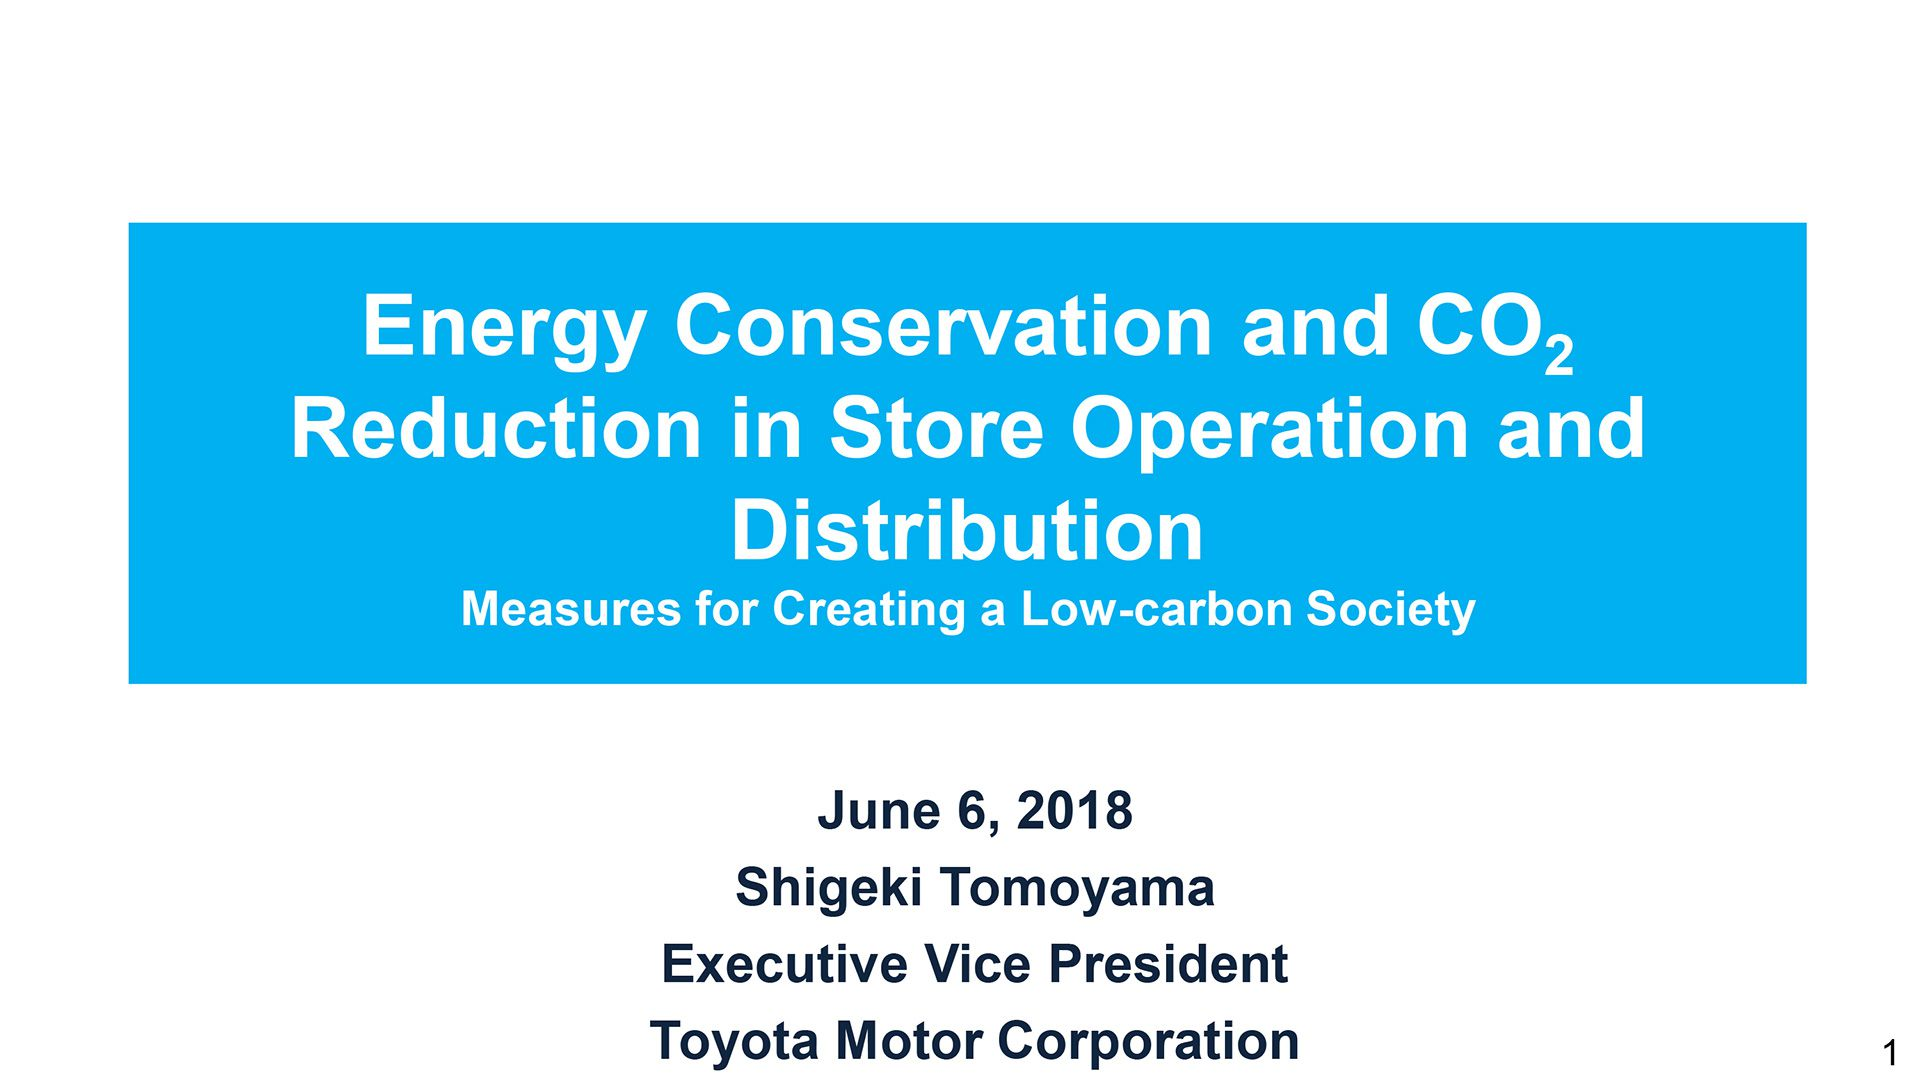 Energy Conservation and CO2 Reduction in Store Operation and Distribution